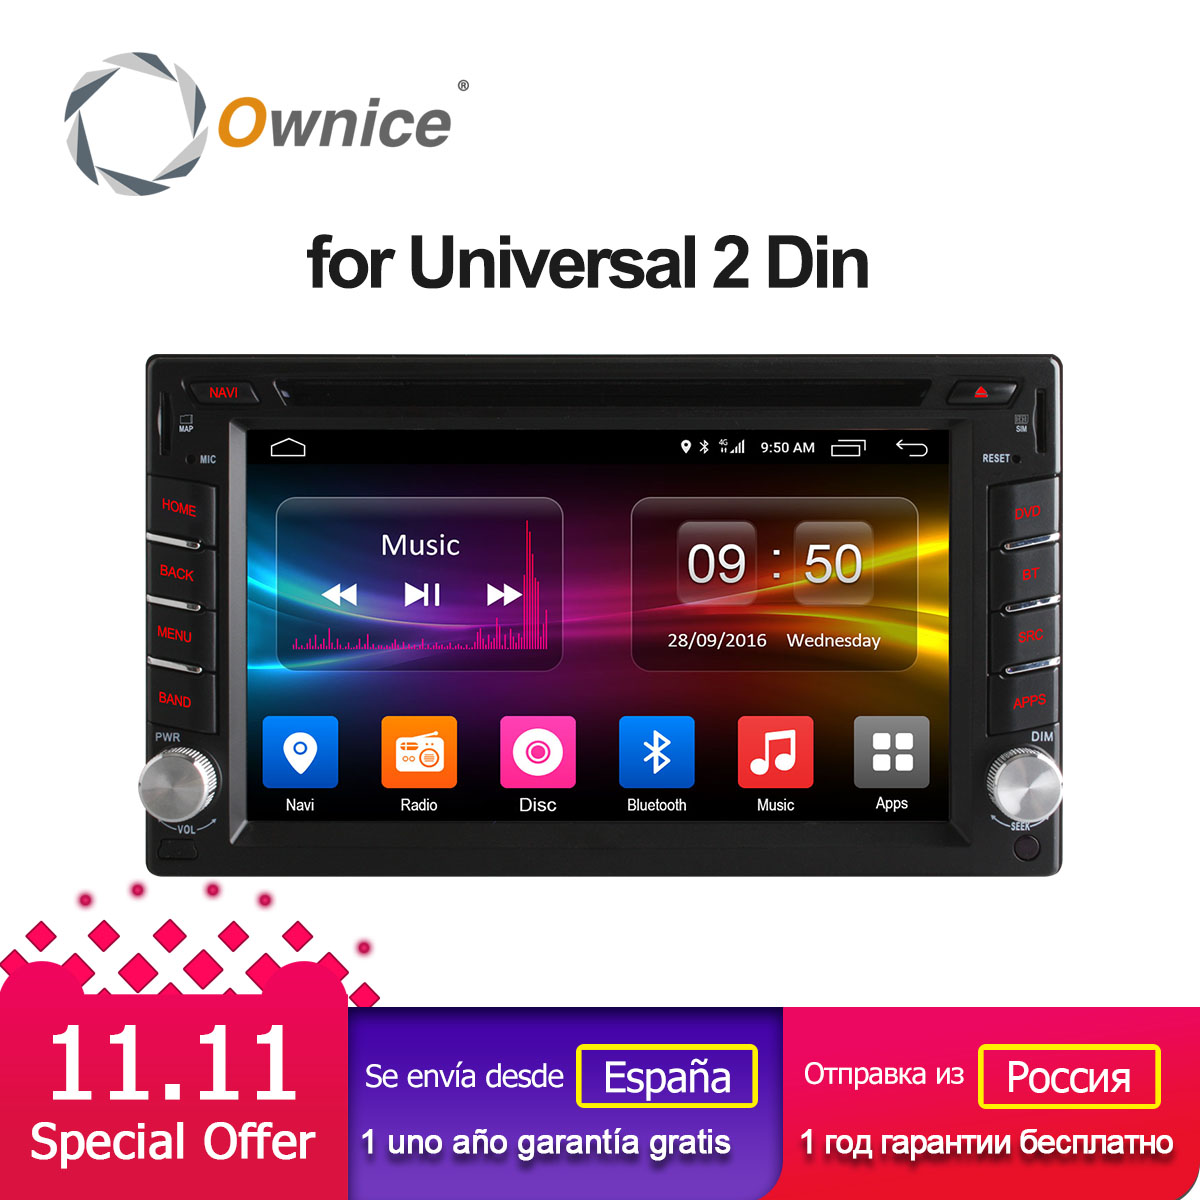 Ownice C500 Universal 2 din Android 6.0 Octa 8 Core Car DVD player GPS Wifi BT Radio BT 2GB RAM 32GB ROM 4G SIM LTE Network ownice c500 octa core android 6 0 car dvd gps for mazda 6 ruiyi ultra 2008 2009 2010 2011 2012 wifi 4g radio 2gb ram bt 32g rom